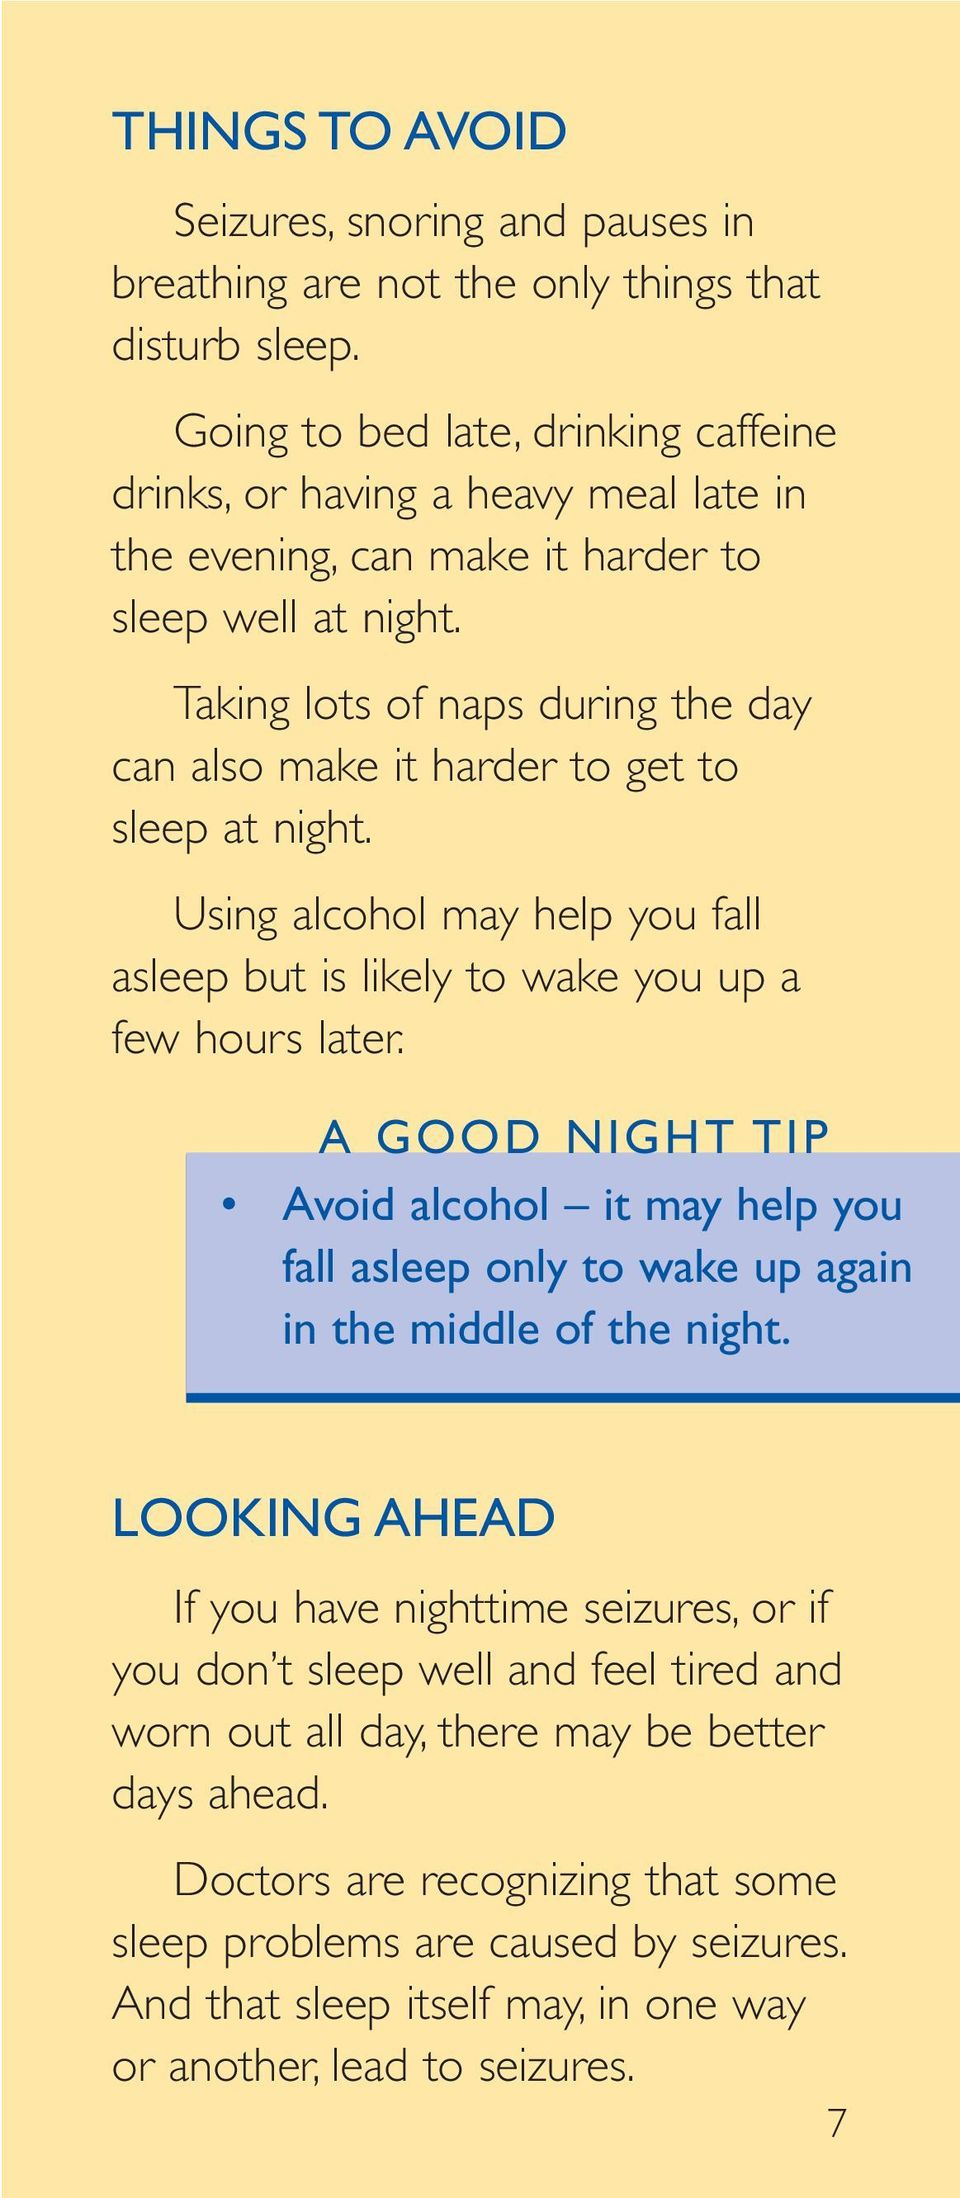 Taking lots of naps during the day can also make it harder to get to sleep at night. Using alcohol may help you fall asleep but is likely to wake you up a few hours later.